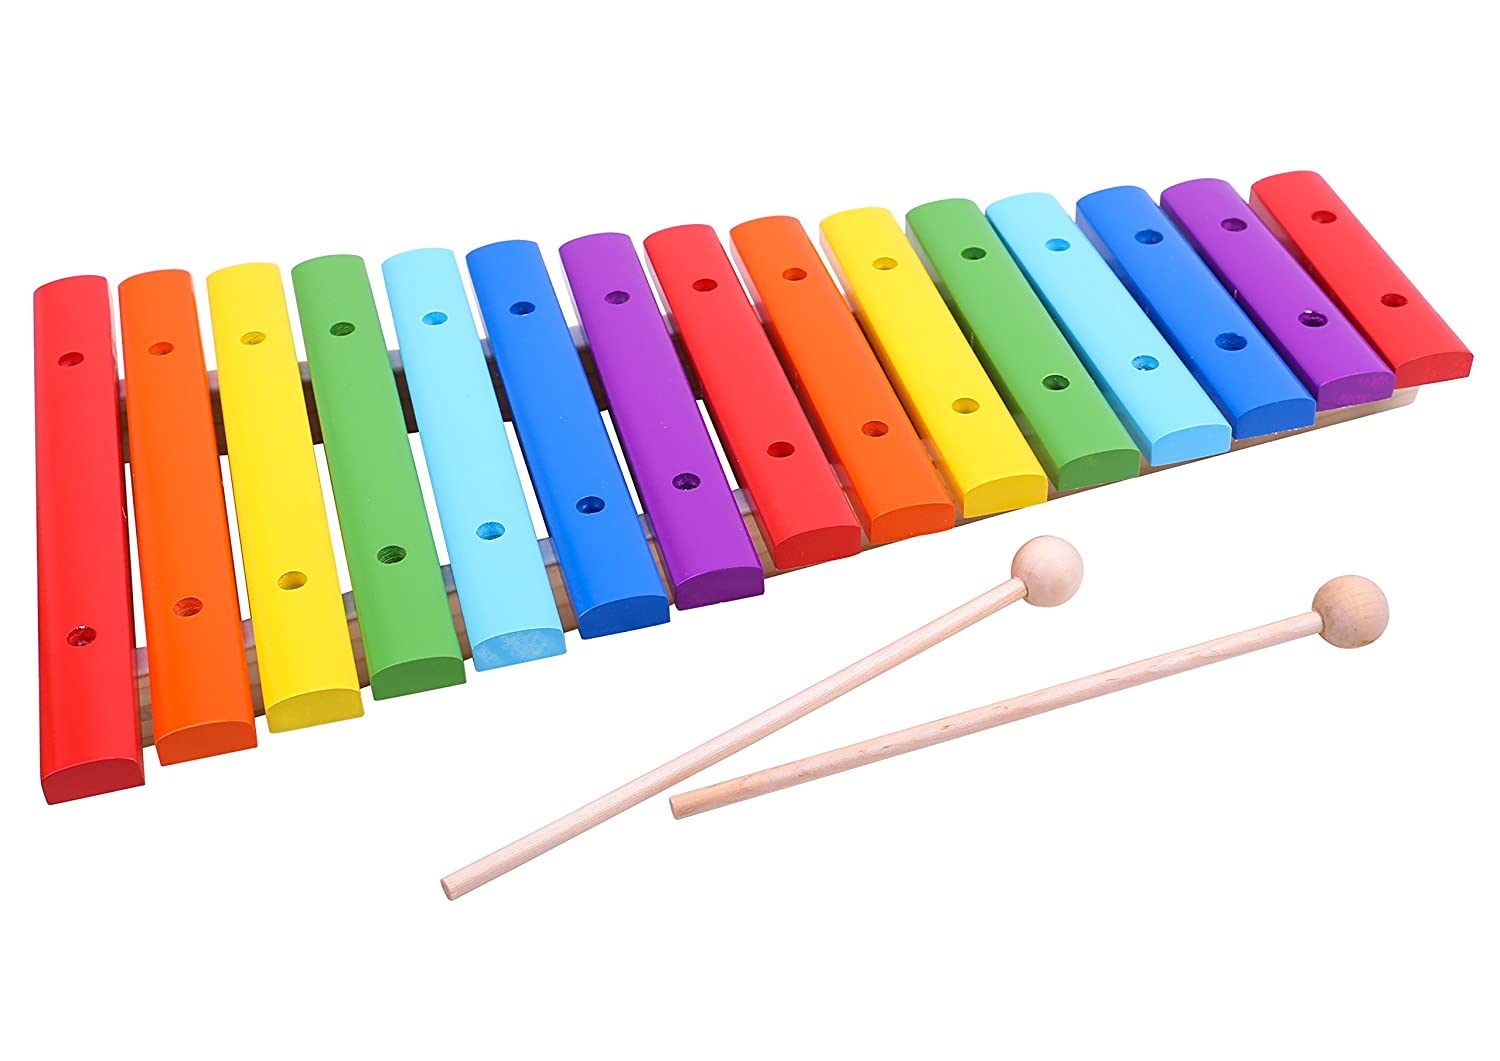 Classic 15-Note Xylophone Wooden Musical Instrument Set & 2 Mallets Toy - Premium Quality *SAMEDAY DISPATCH* TKC296-S2 N Tooky Toys